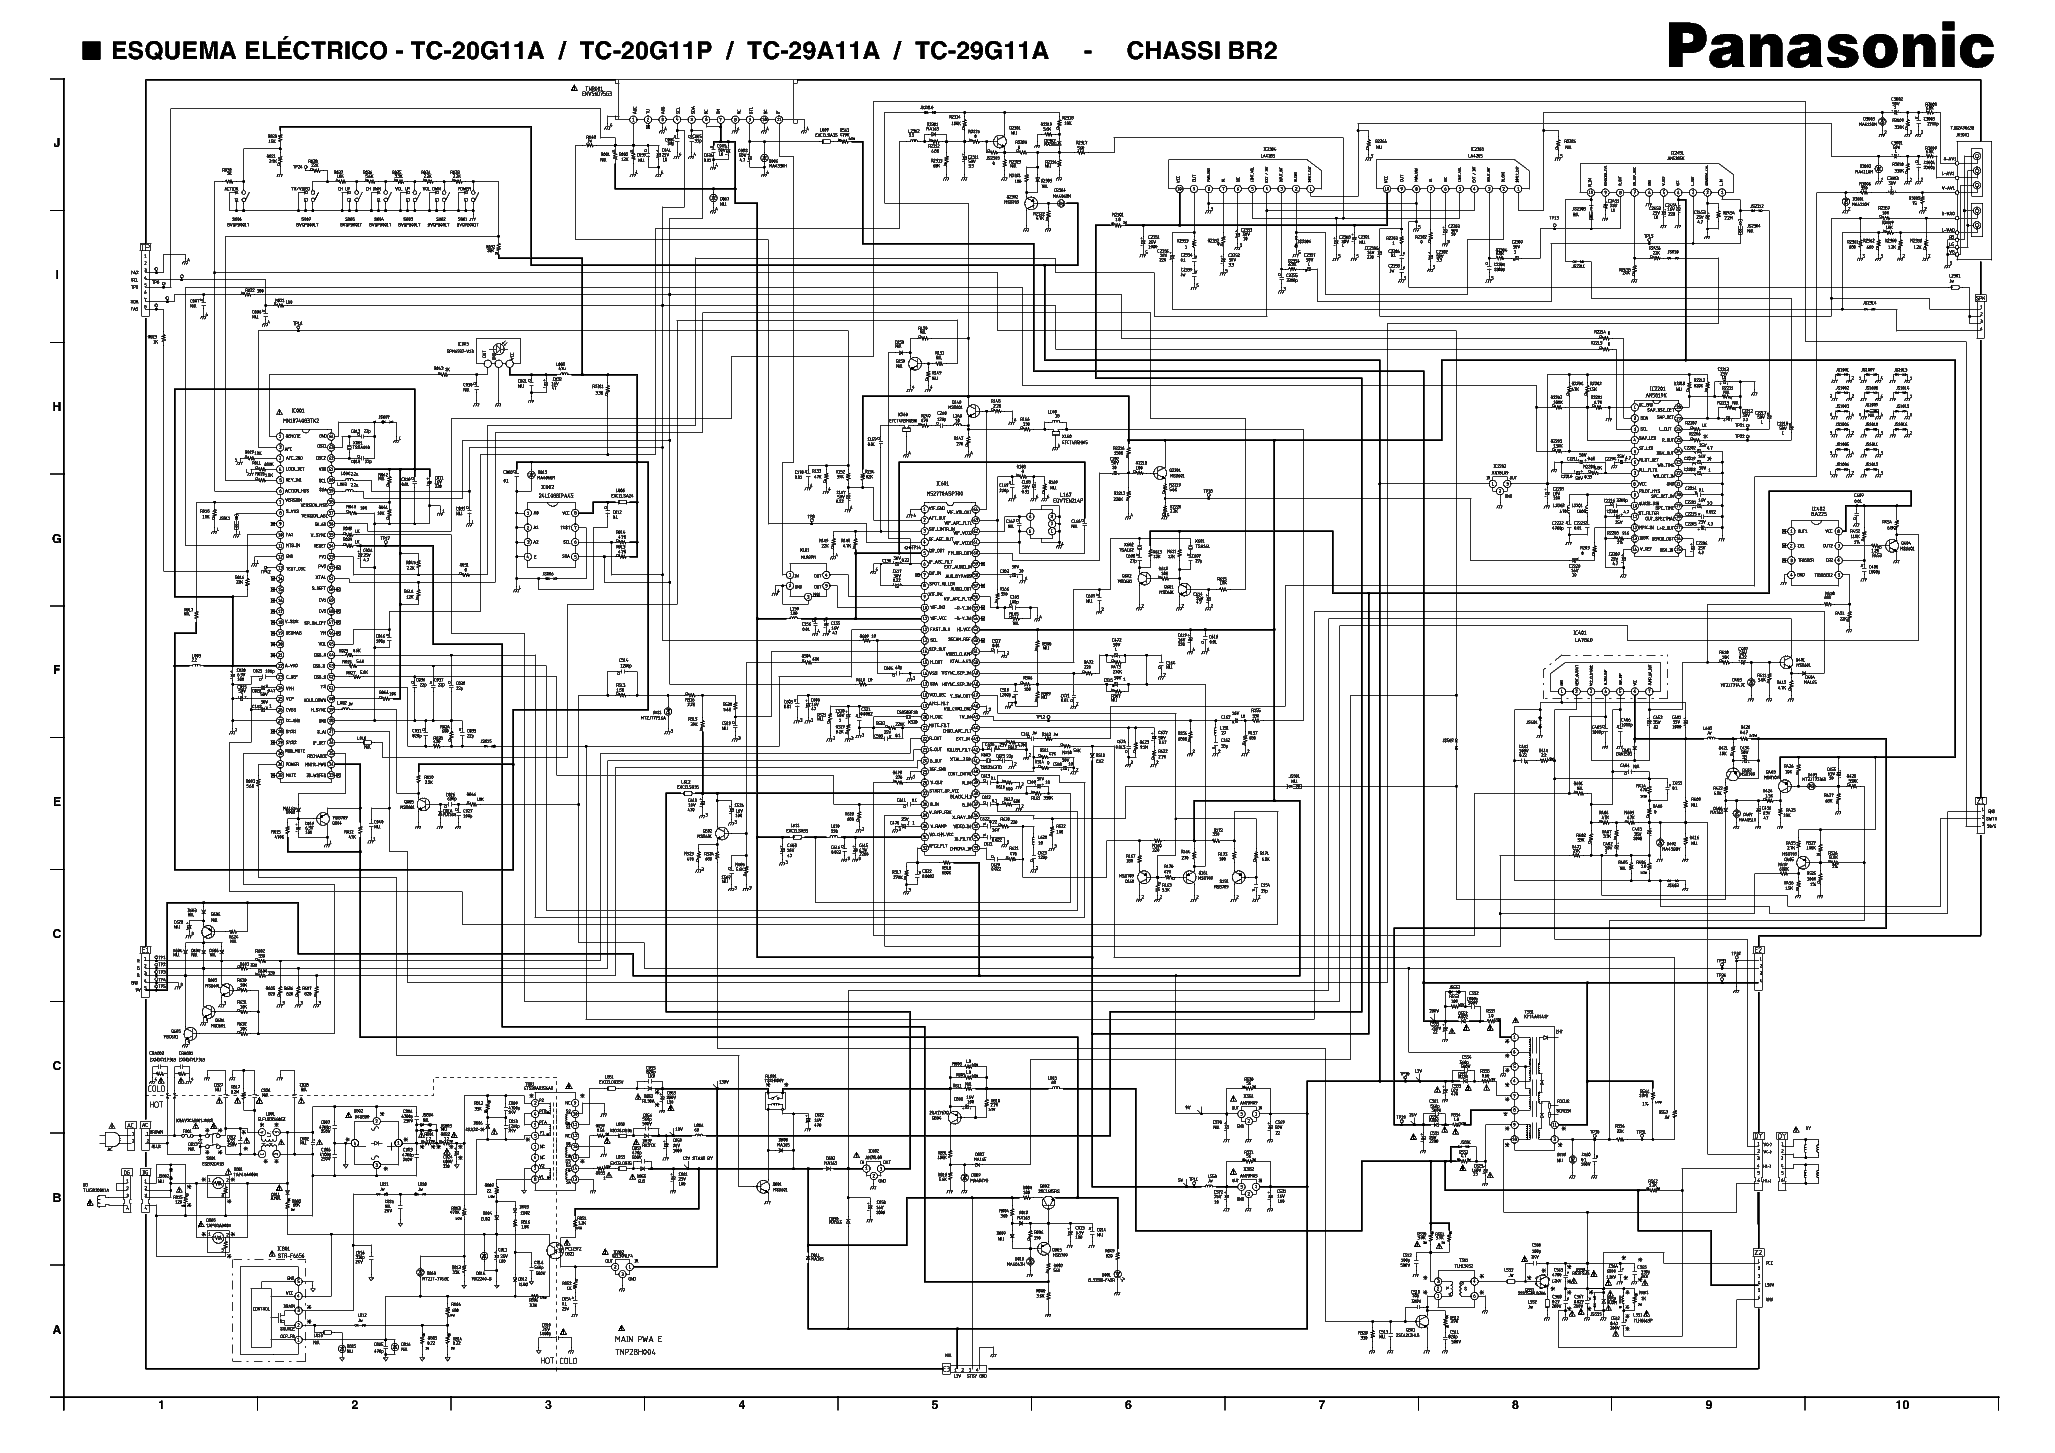 Free electrical drawing at getdrawings free for personal use rh getdrawings radio wiring harness diagram panasonic microwave parts